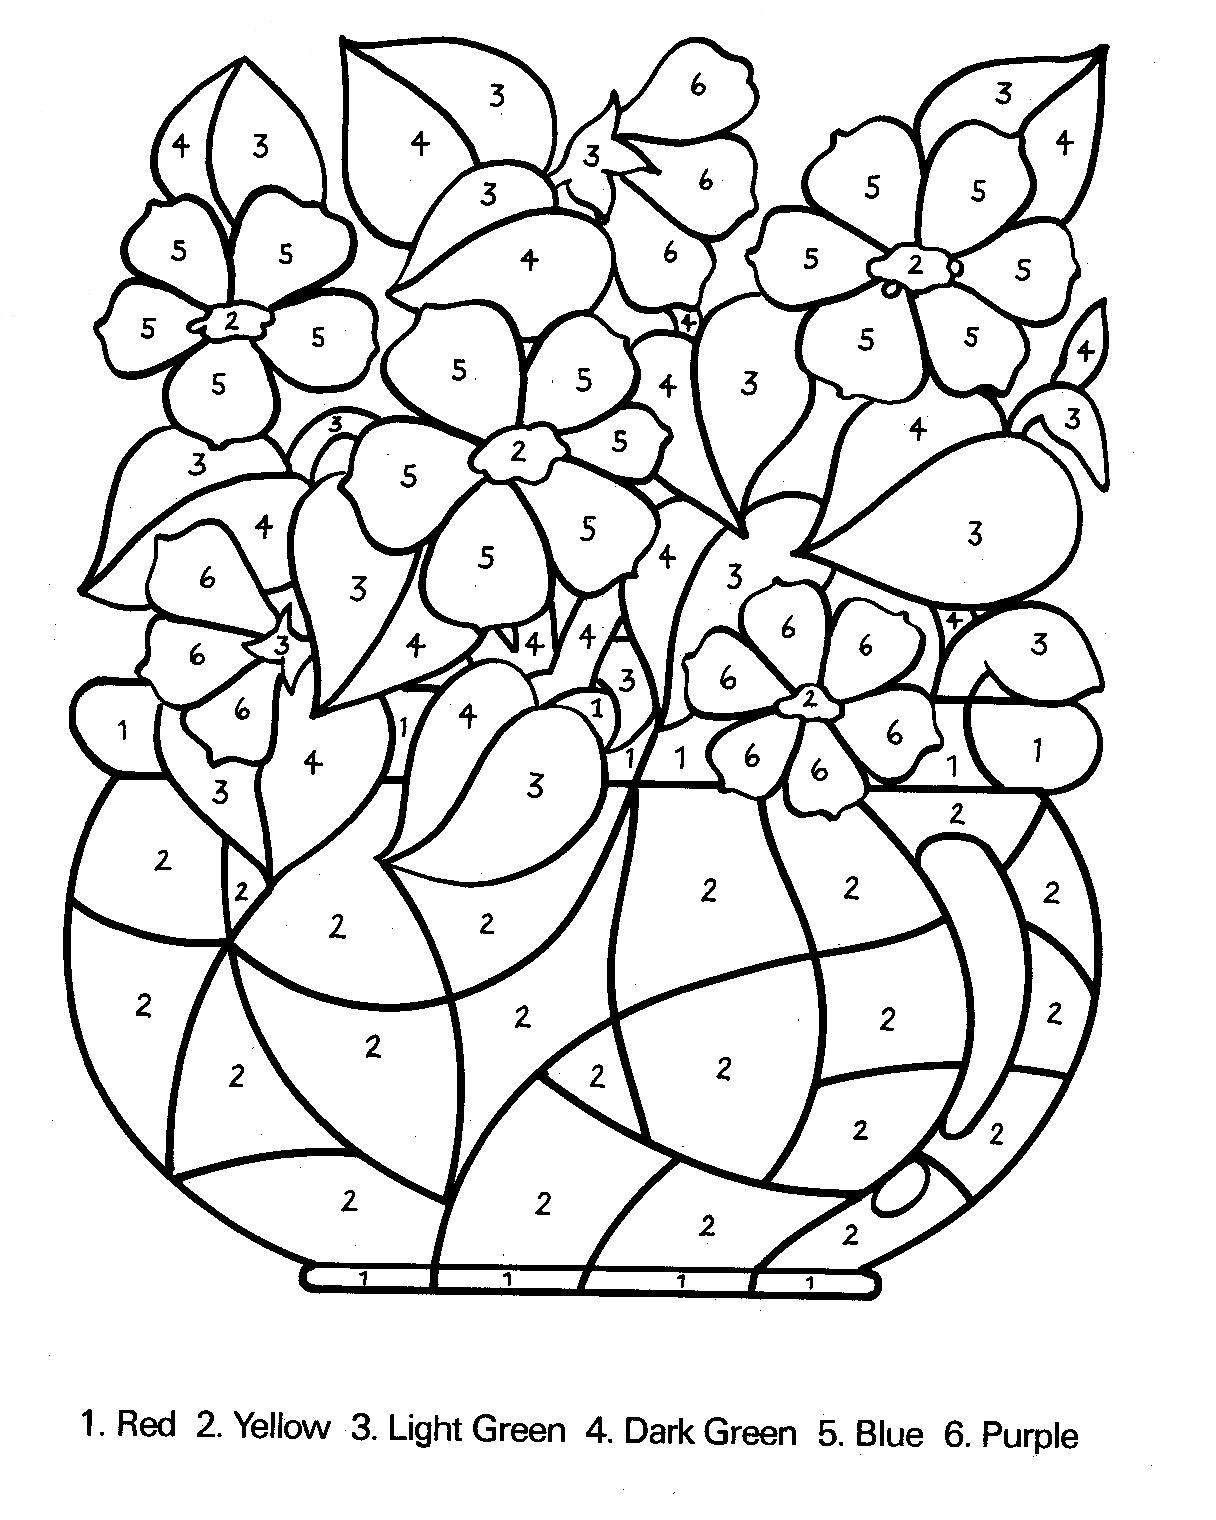 Coloring pages using addition - Instead Of Using Numbers On The Picture Use Math Problems And Match The Color To